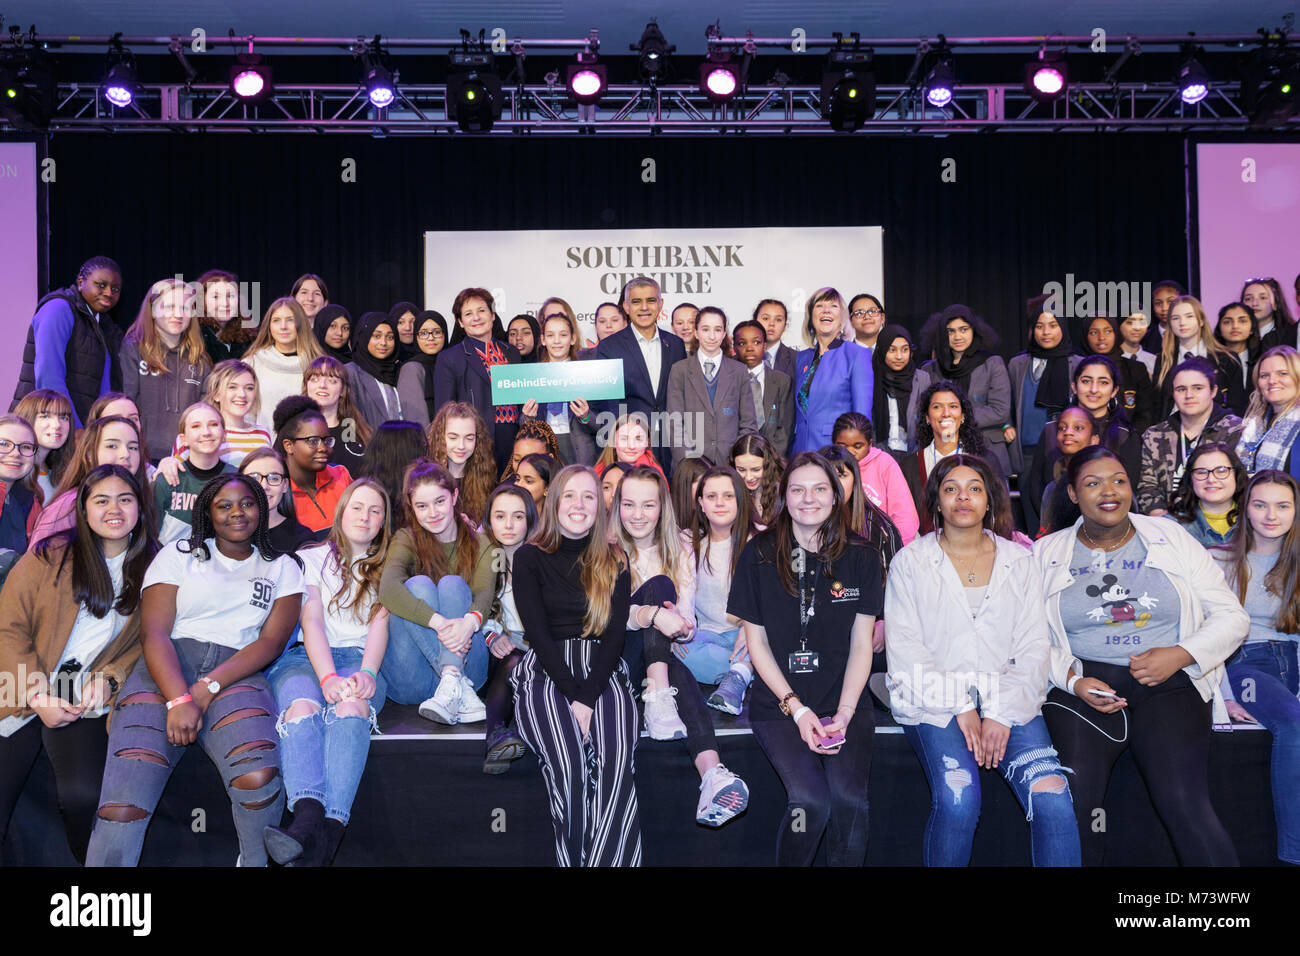 Royal Festival Hall, London, 8th March 2018. London Mayor Sadiq Khan is joined on stage by around 200 girls from - Stock Image